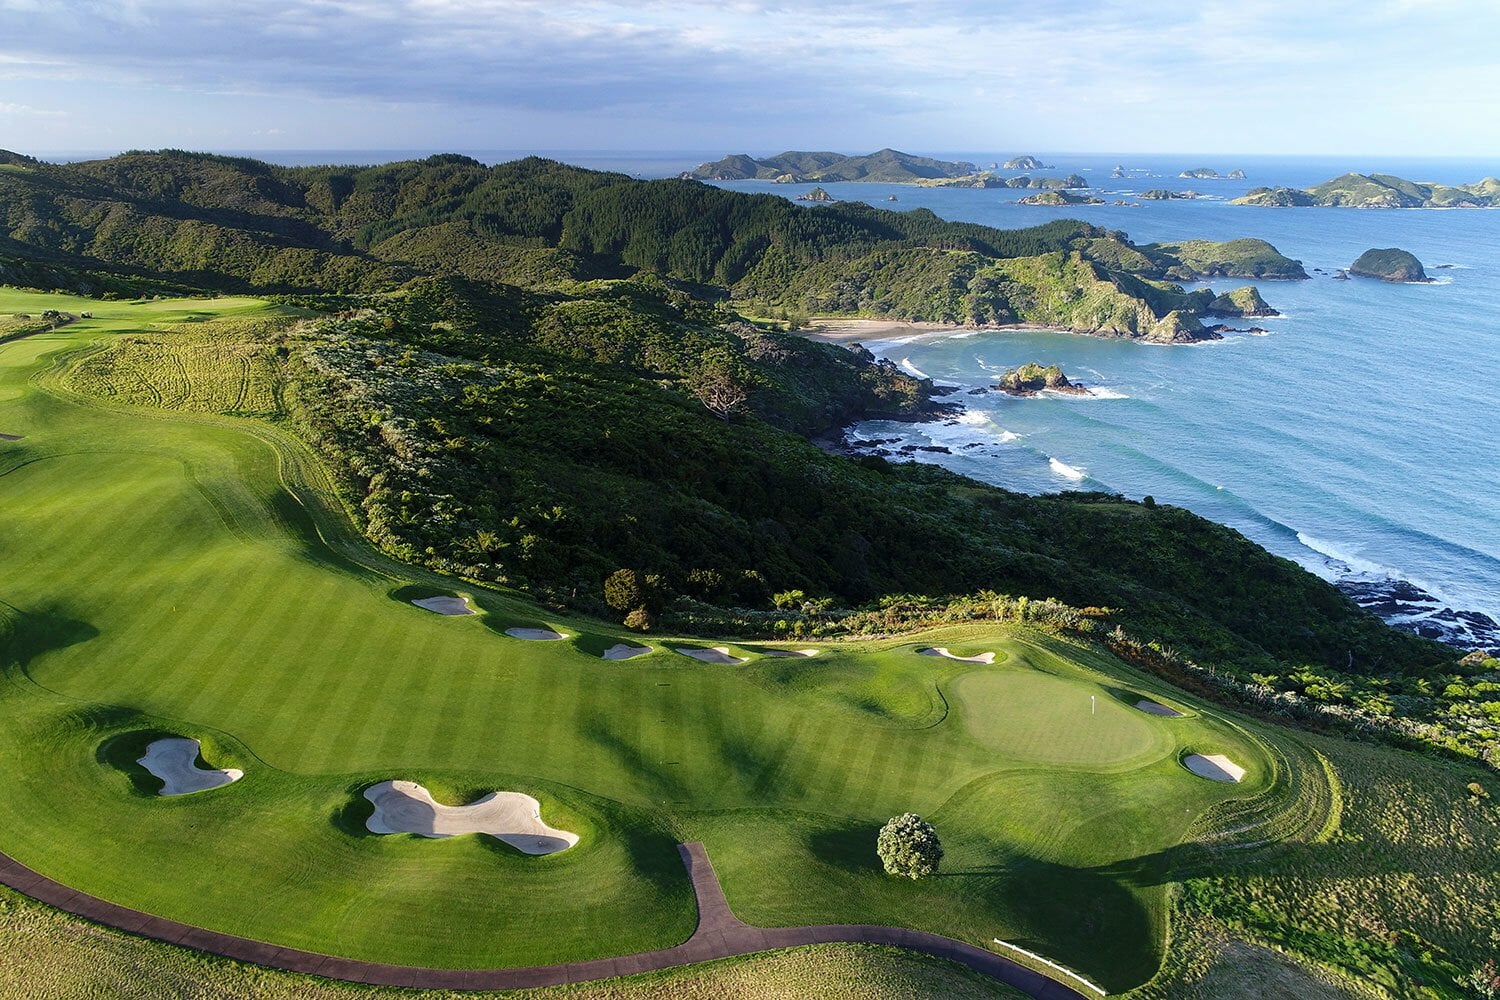 Aerial image displaying the Kauri Cliffs Golf Course and distant Bay of Islands in New Zealand